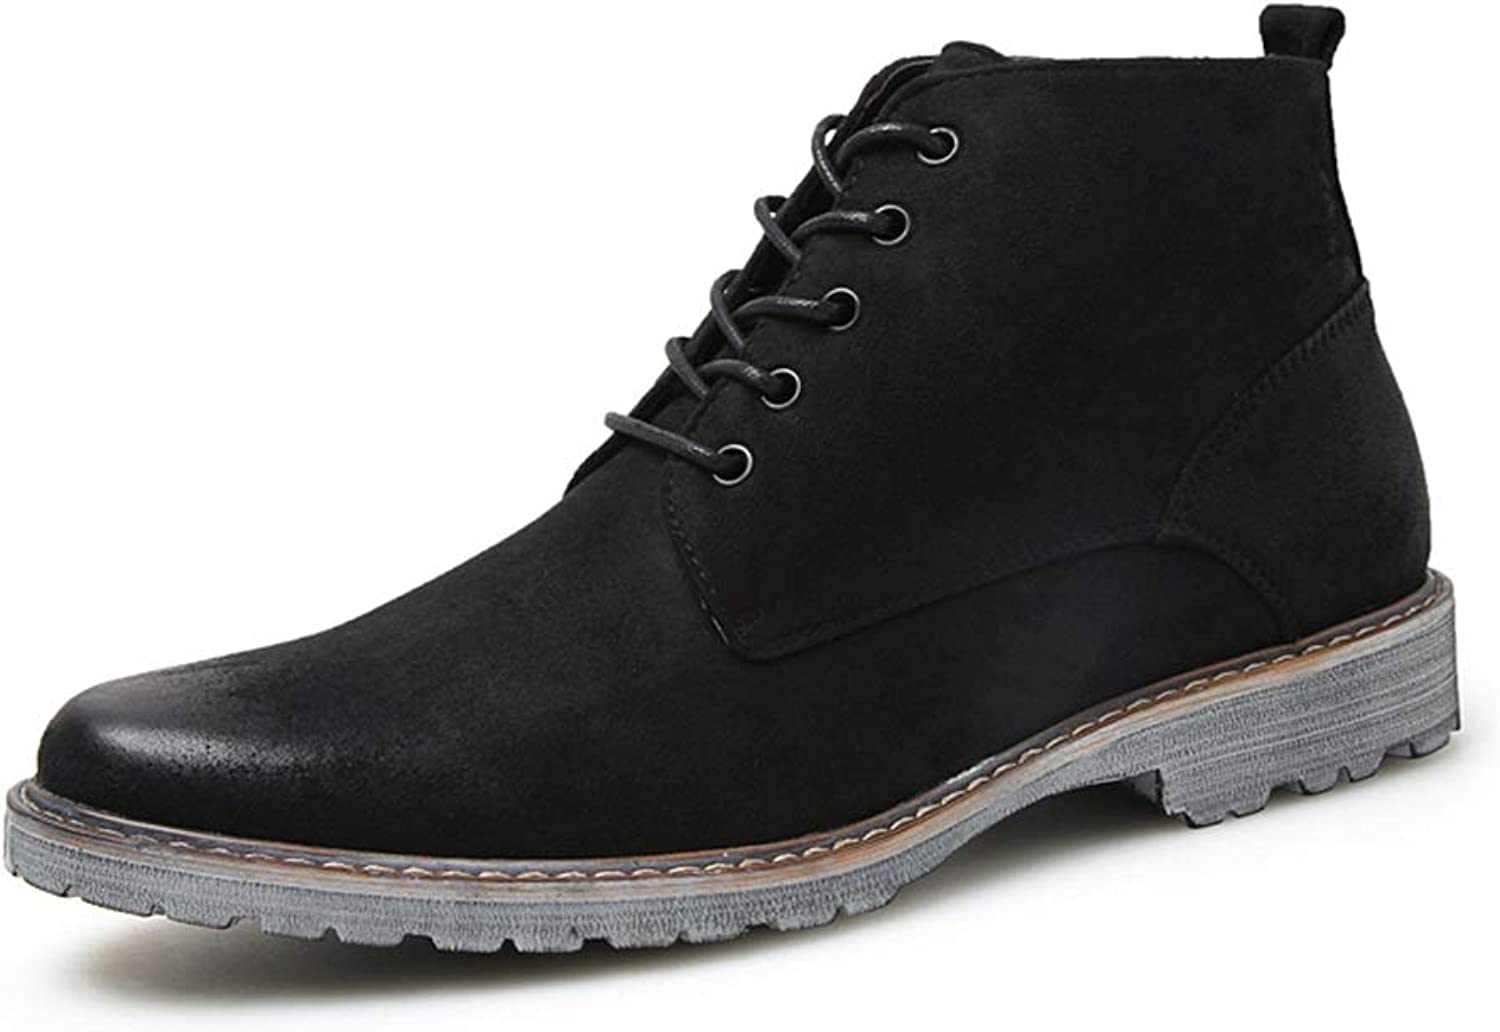 2019 Mens Boots Men's Casual Comfortable Simple Retro Lace-up Formal shoes Fashion Boots